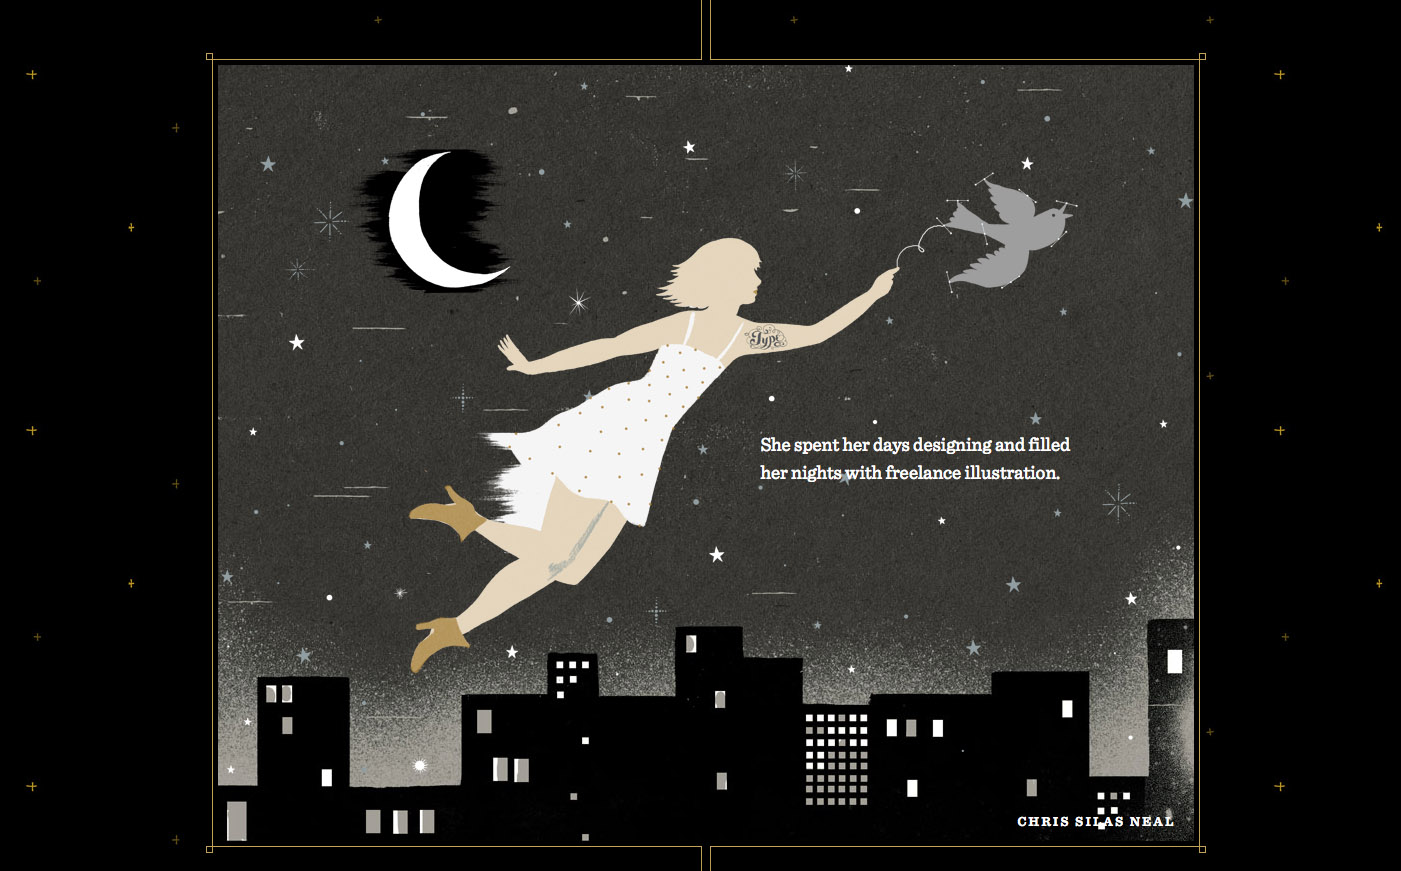 Parallax scrolling: screenshot shows an illustration of a woman in a white dress being carried by a swift over a city skyline at night